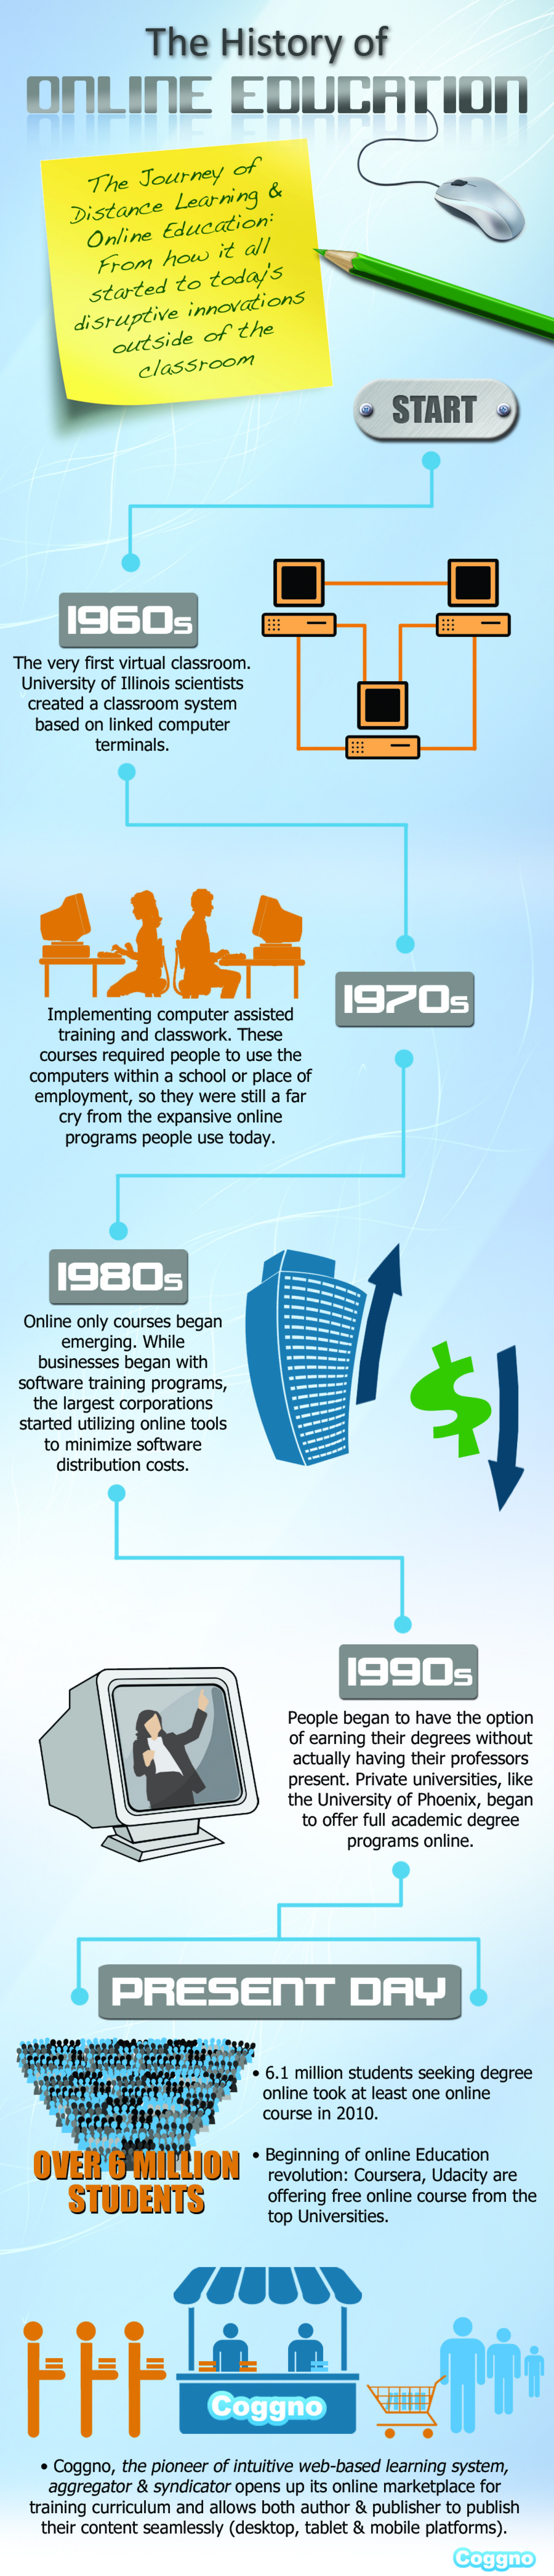 Online Education | A Visual History Infographic